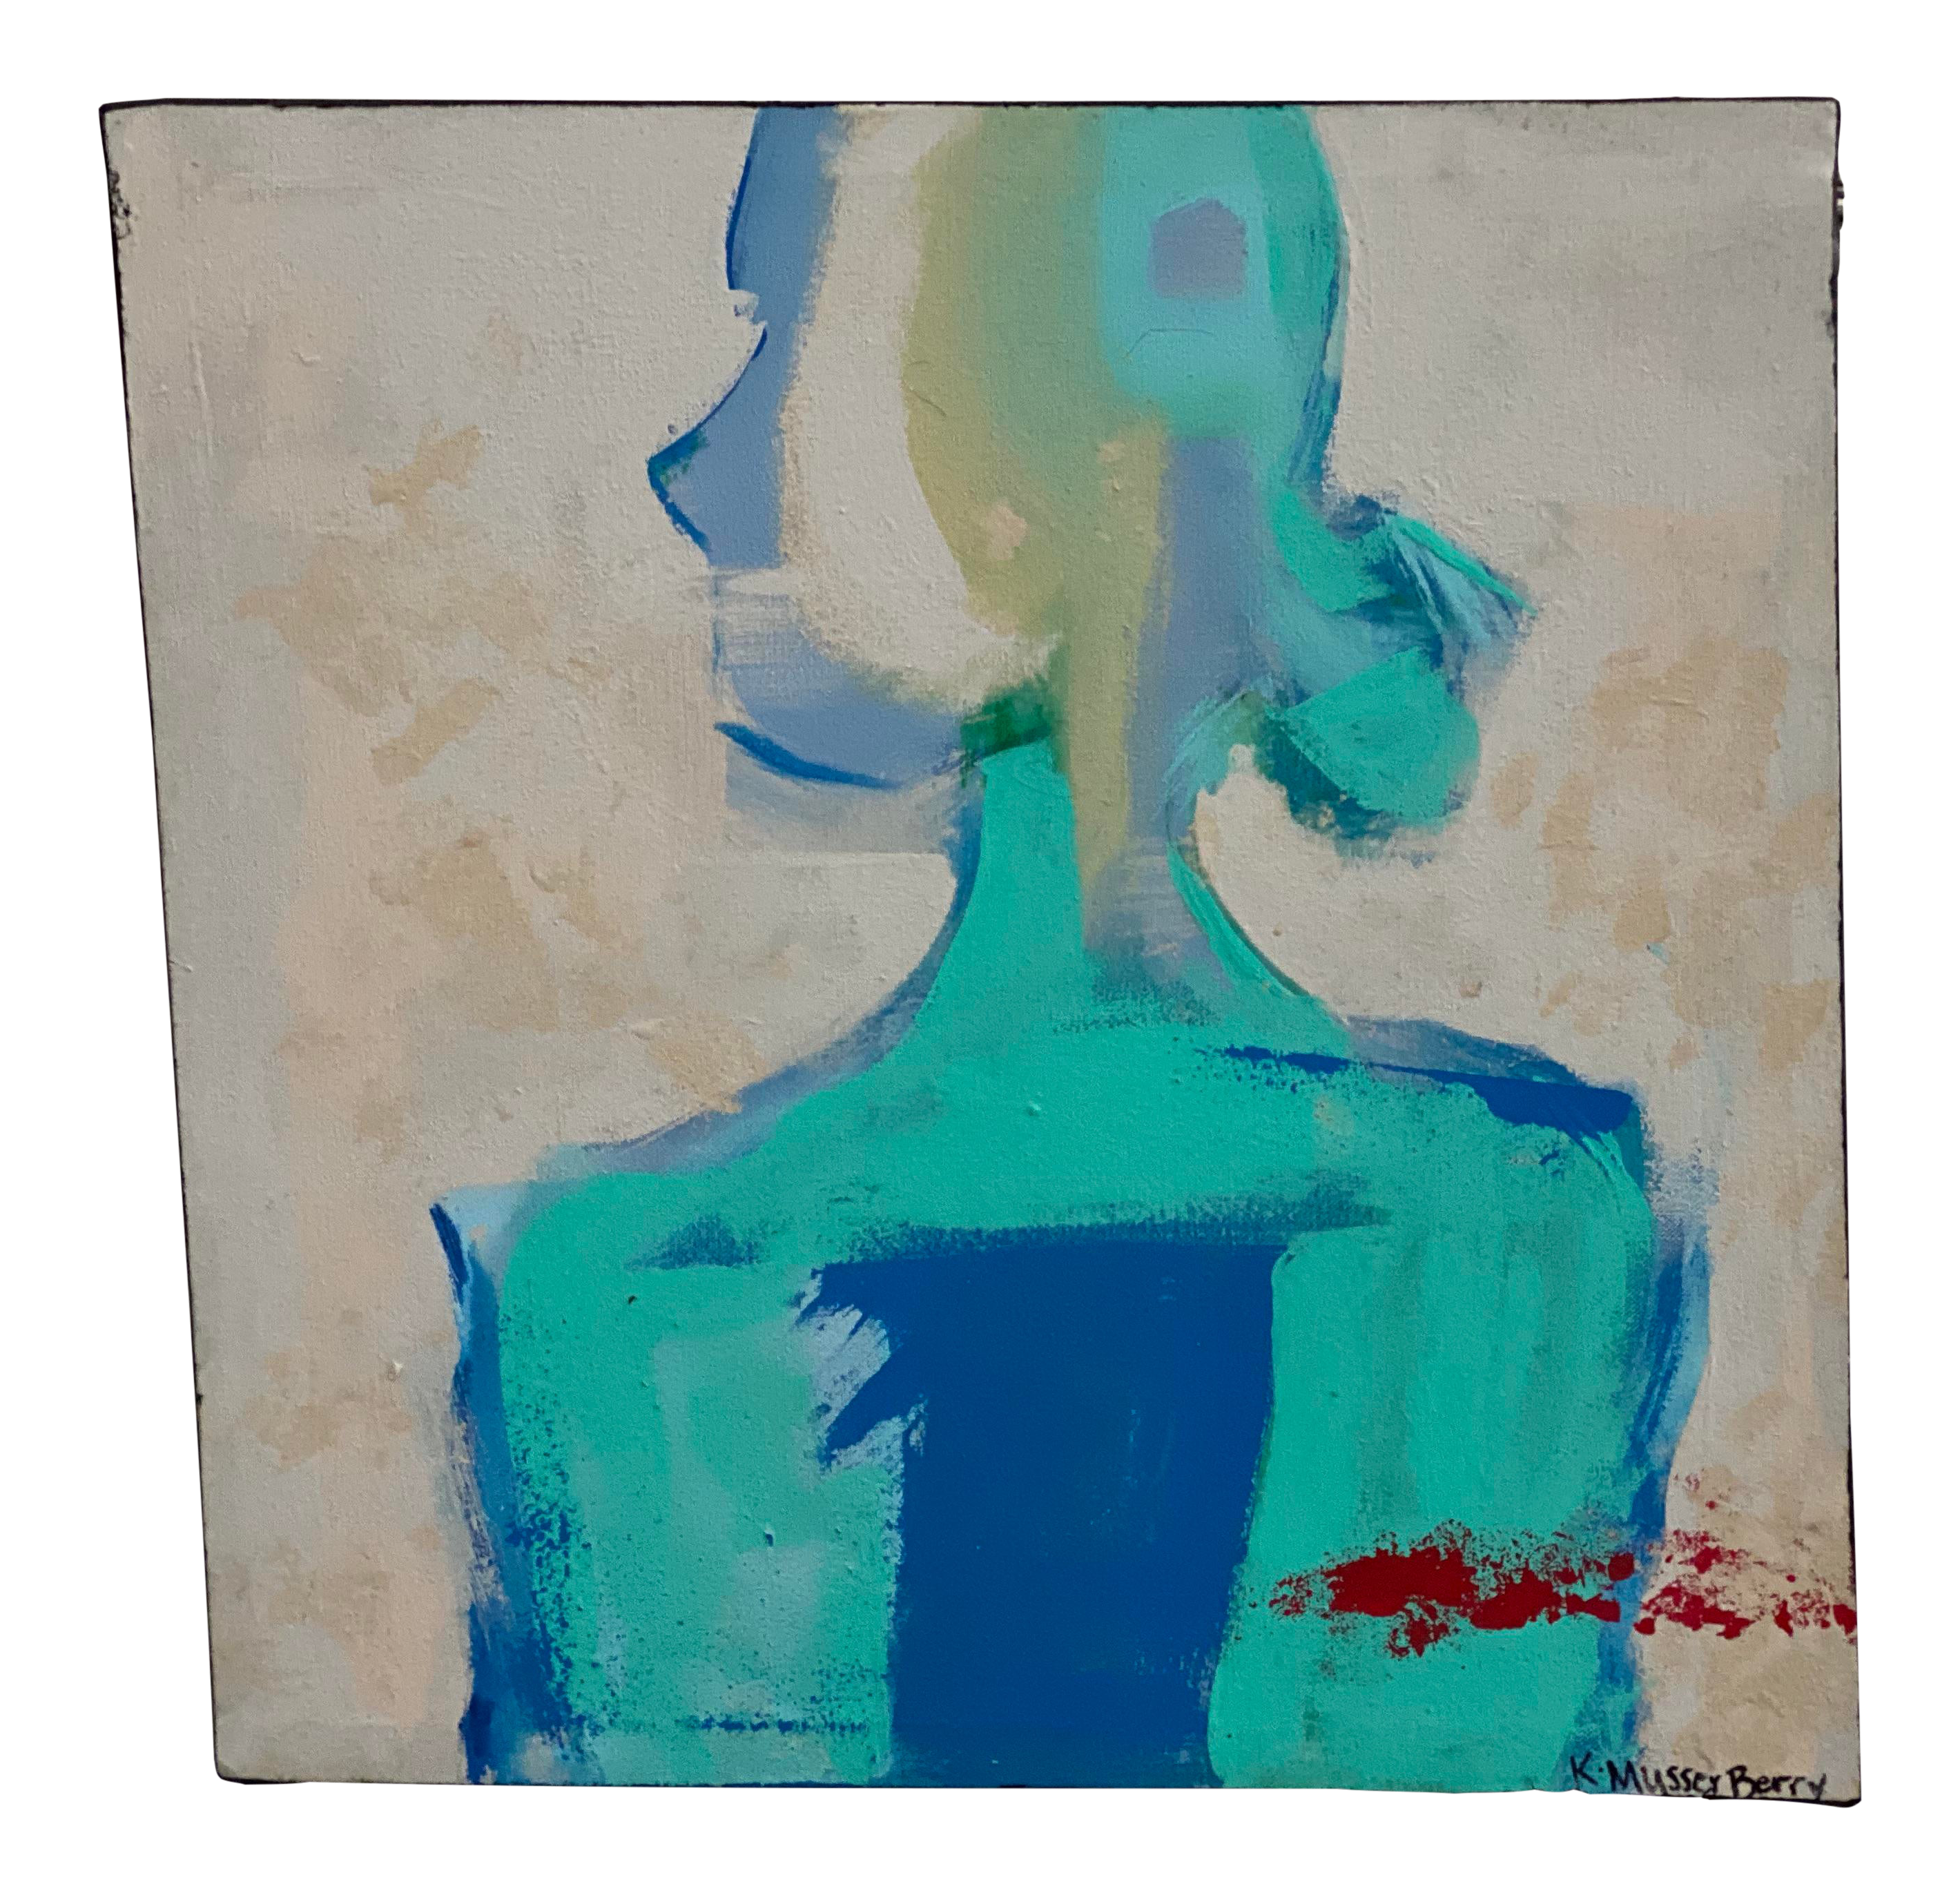 Abstract Acrylic Painting Blue Torso By Katherine Musser Berry In 2020 Fine Art Painting Abstract Abstract Painting Acrylic Abstract Acrylic